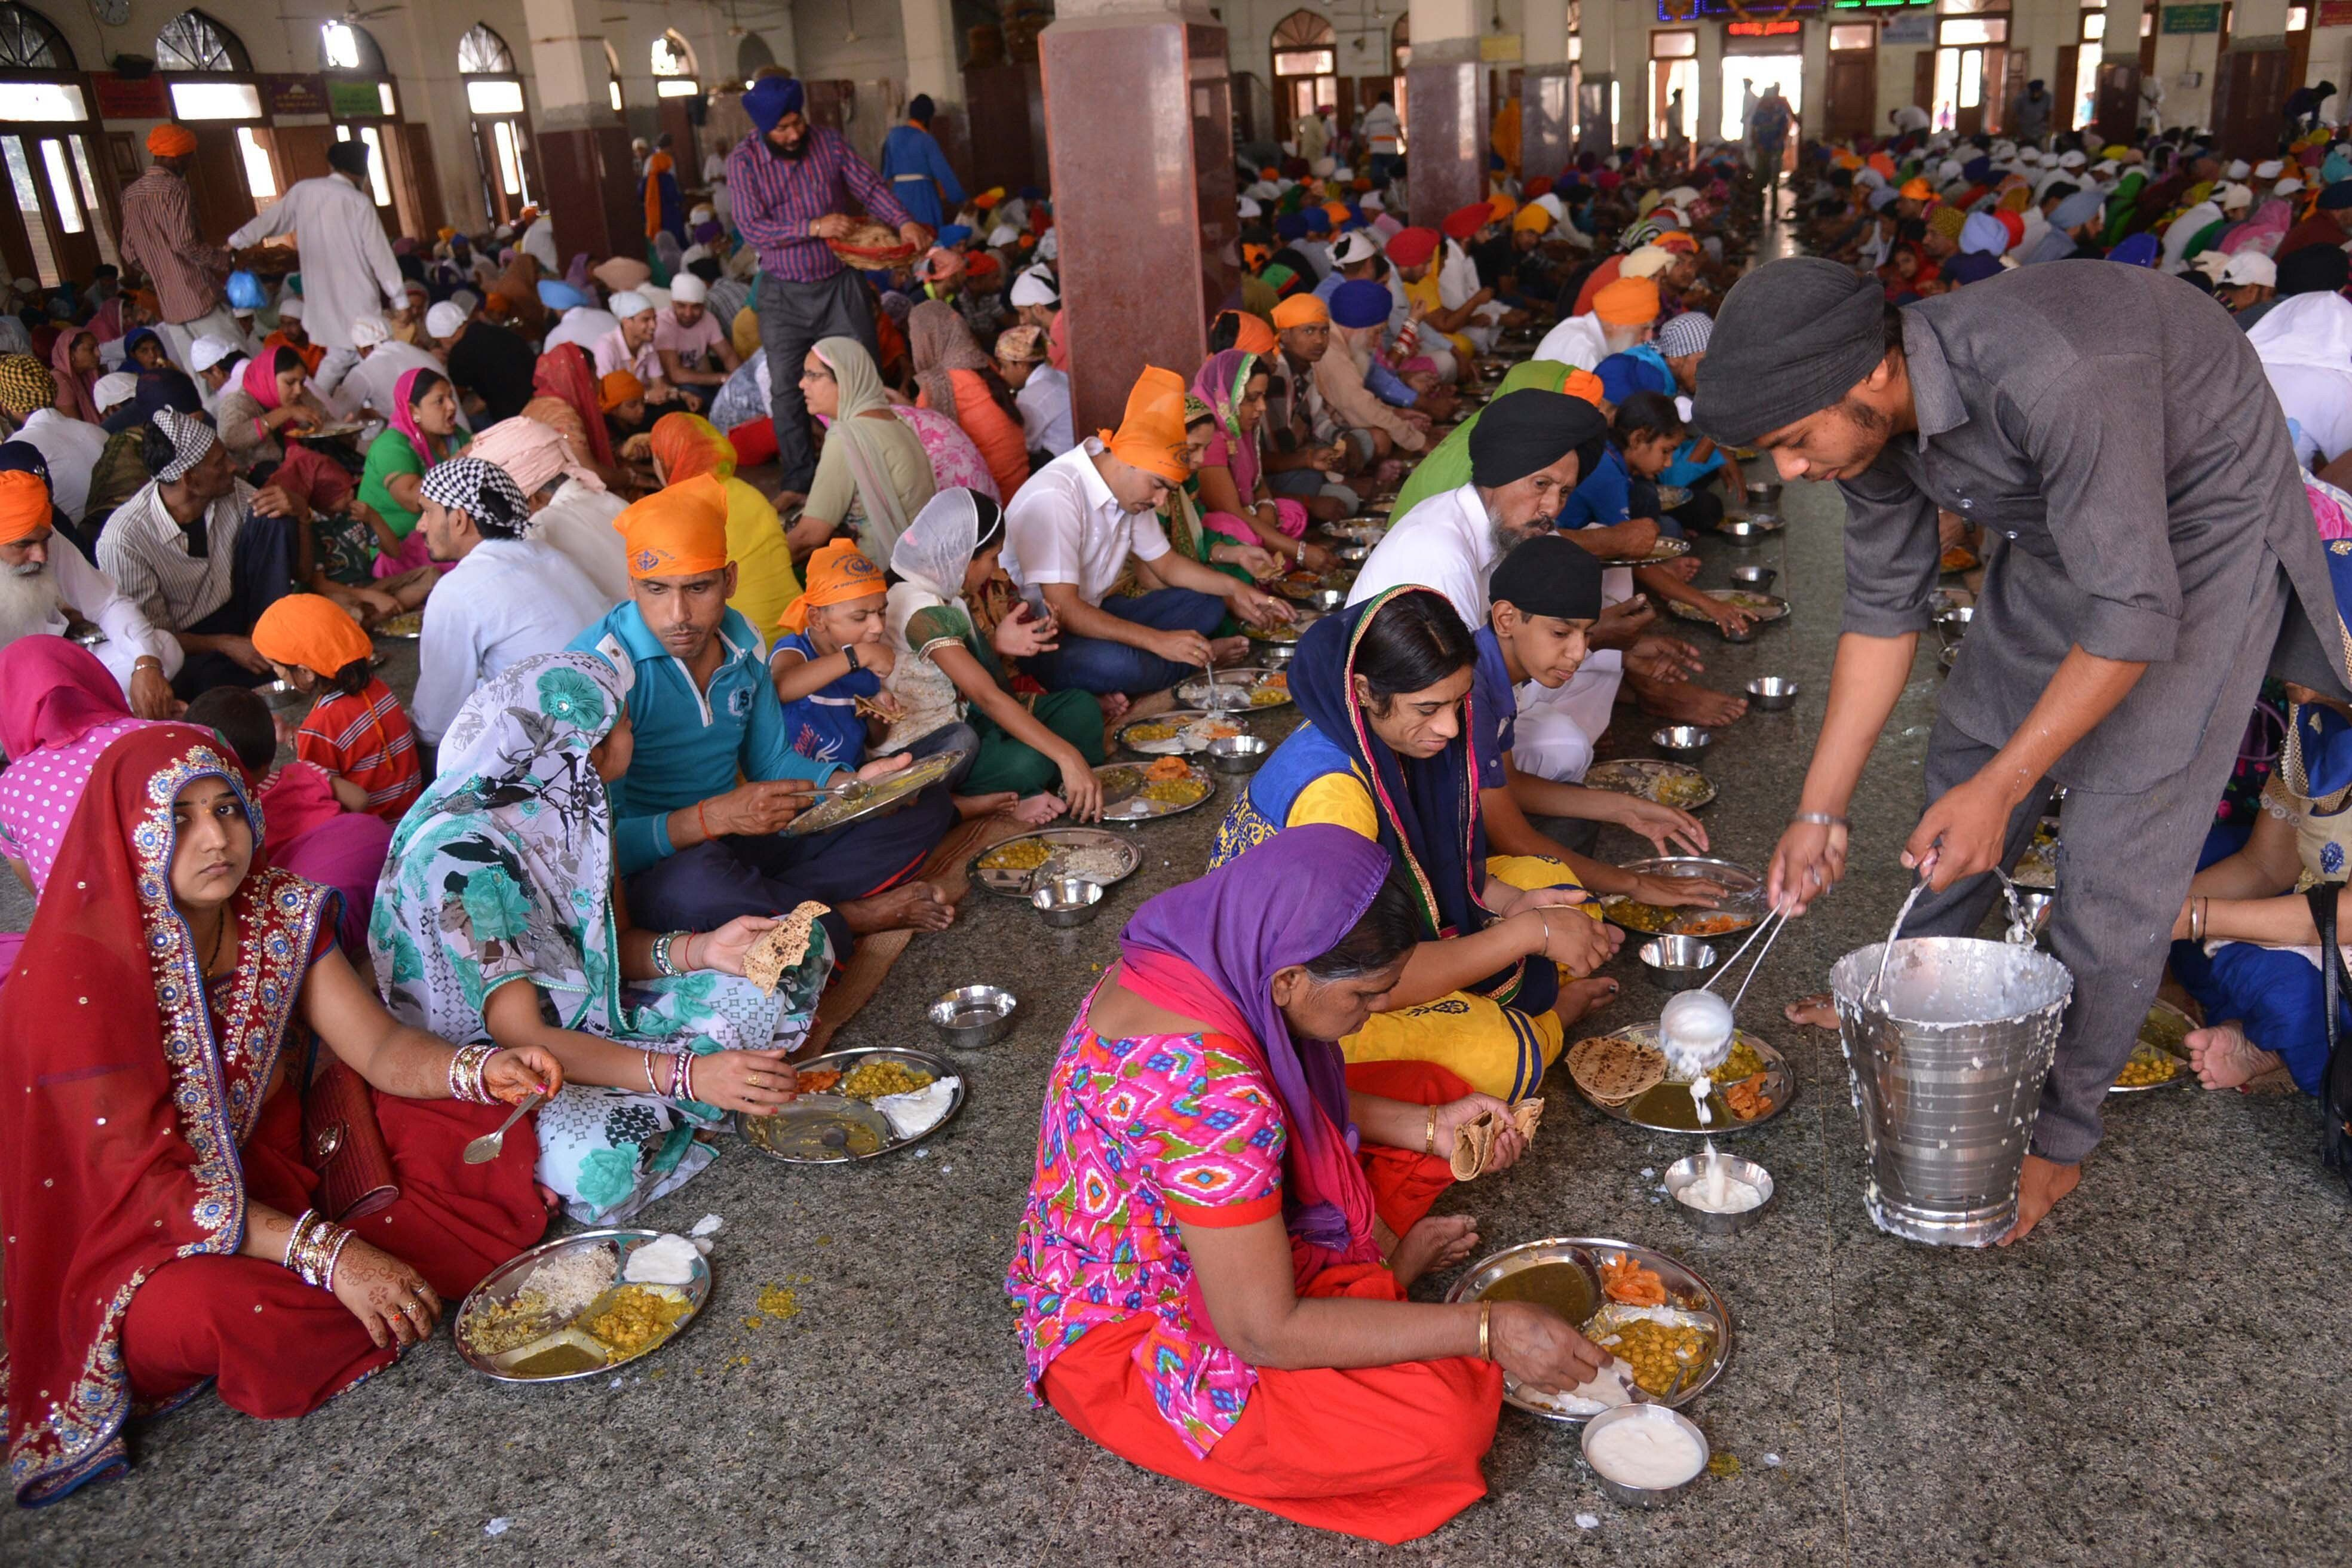 Sikh devotees eat a communal vegetarian meal, known as langar, in a hall at the Golden temple in Amritsar in 2015.